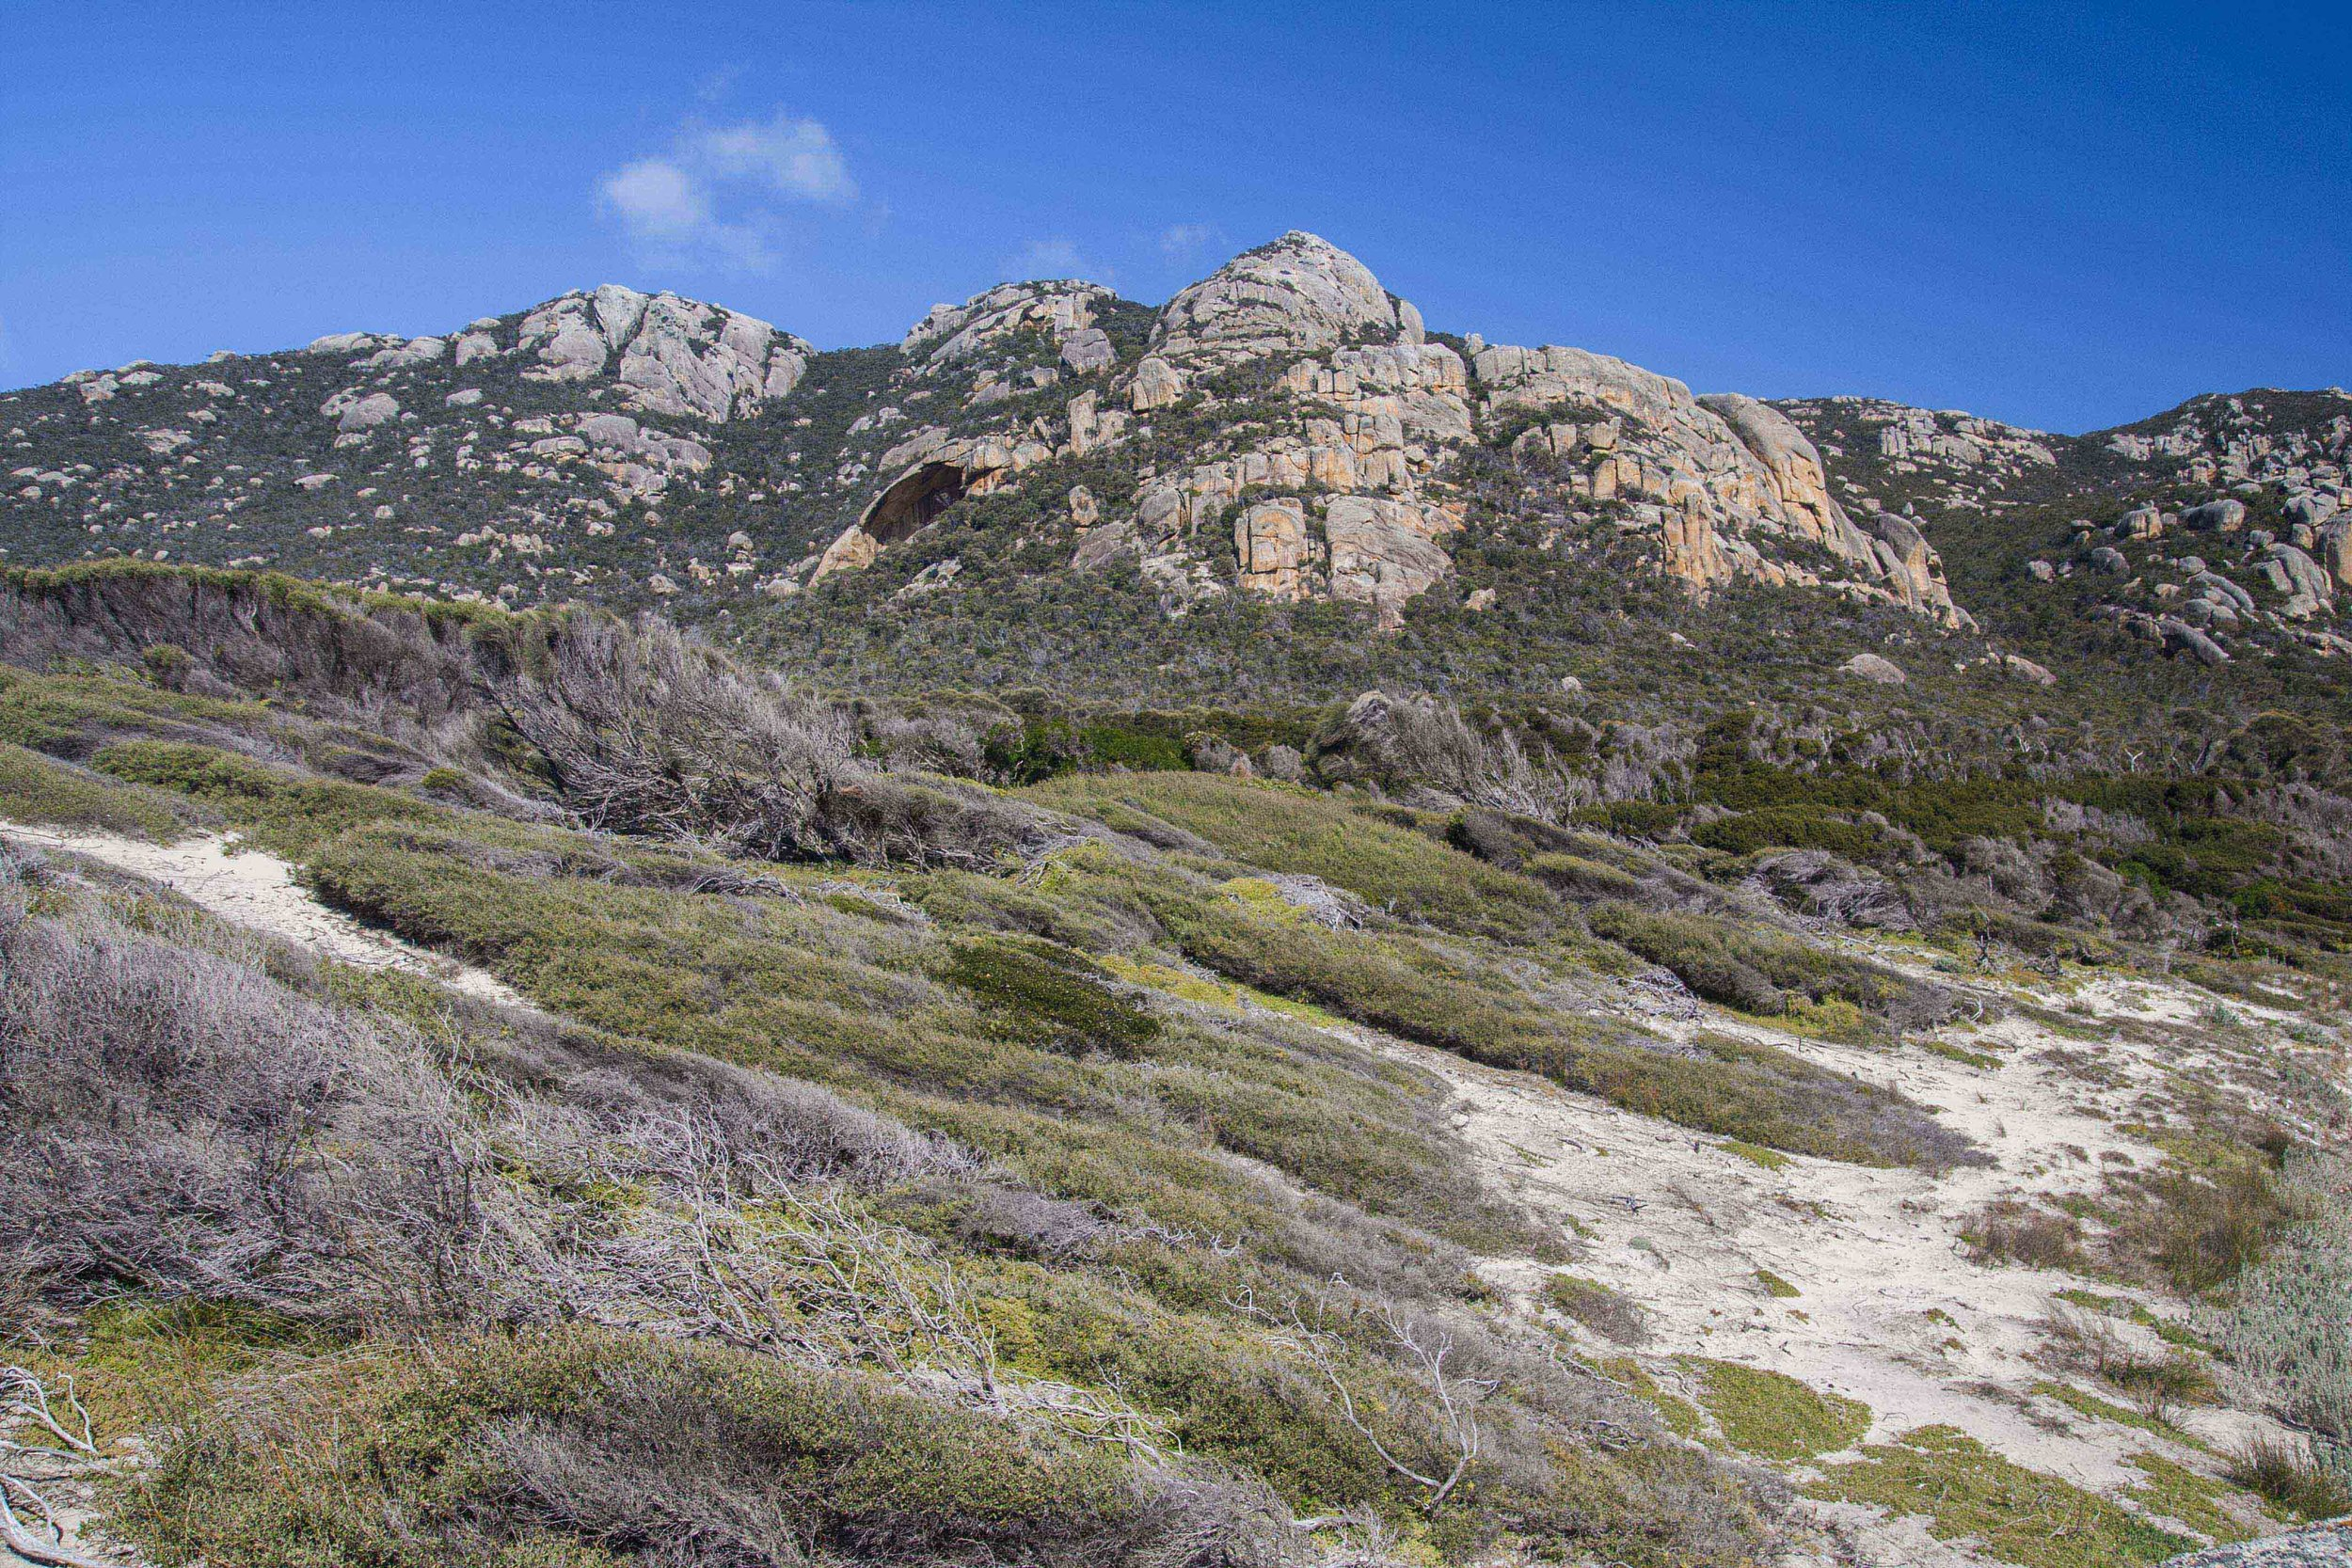 Coastal scrub vegetation and rocky Mount Killiecrankie on Flinders Island, Tasmania